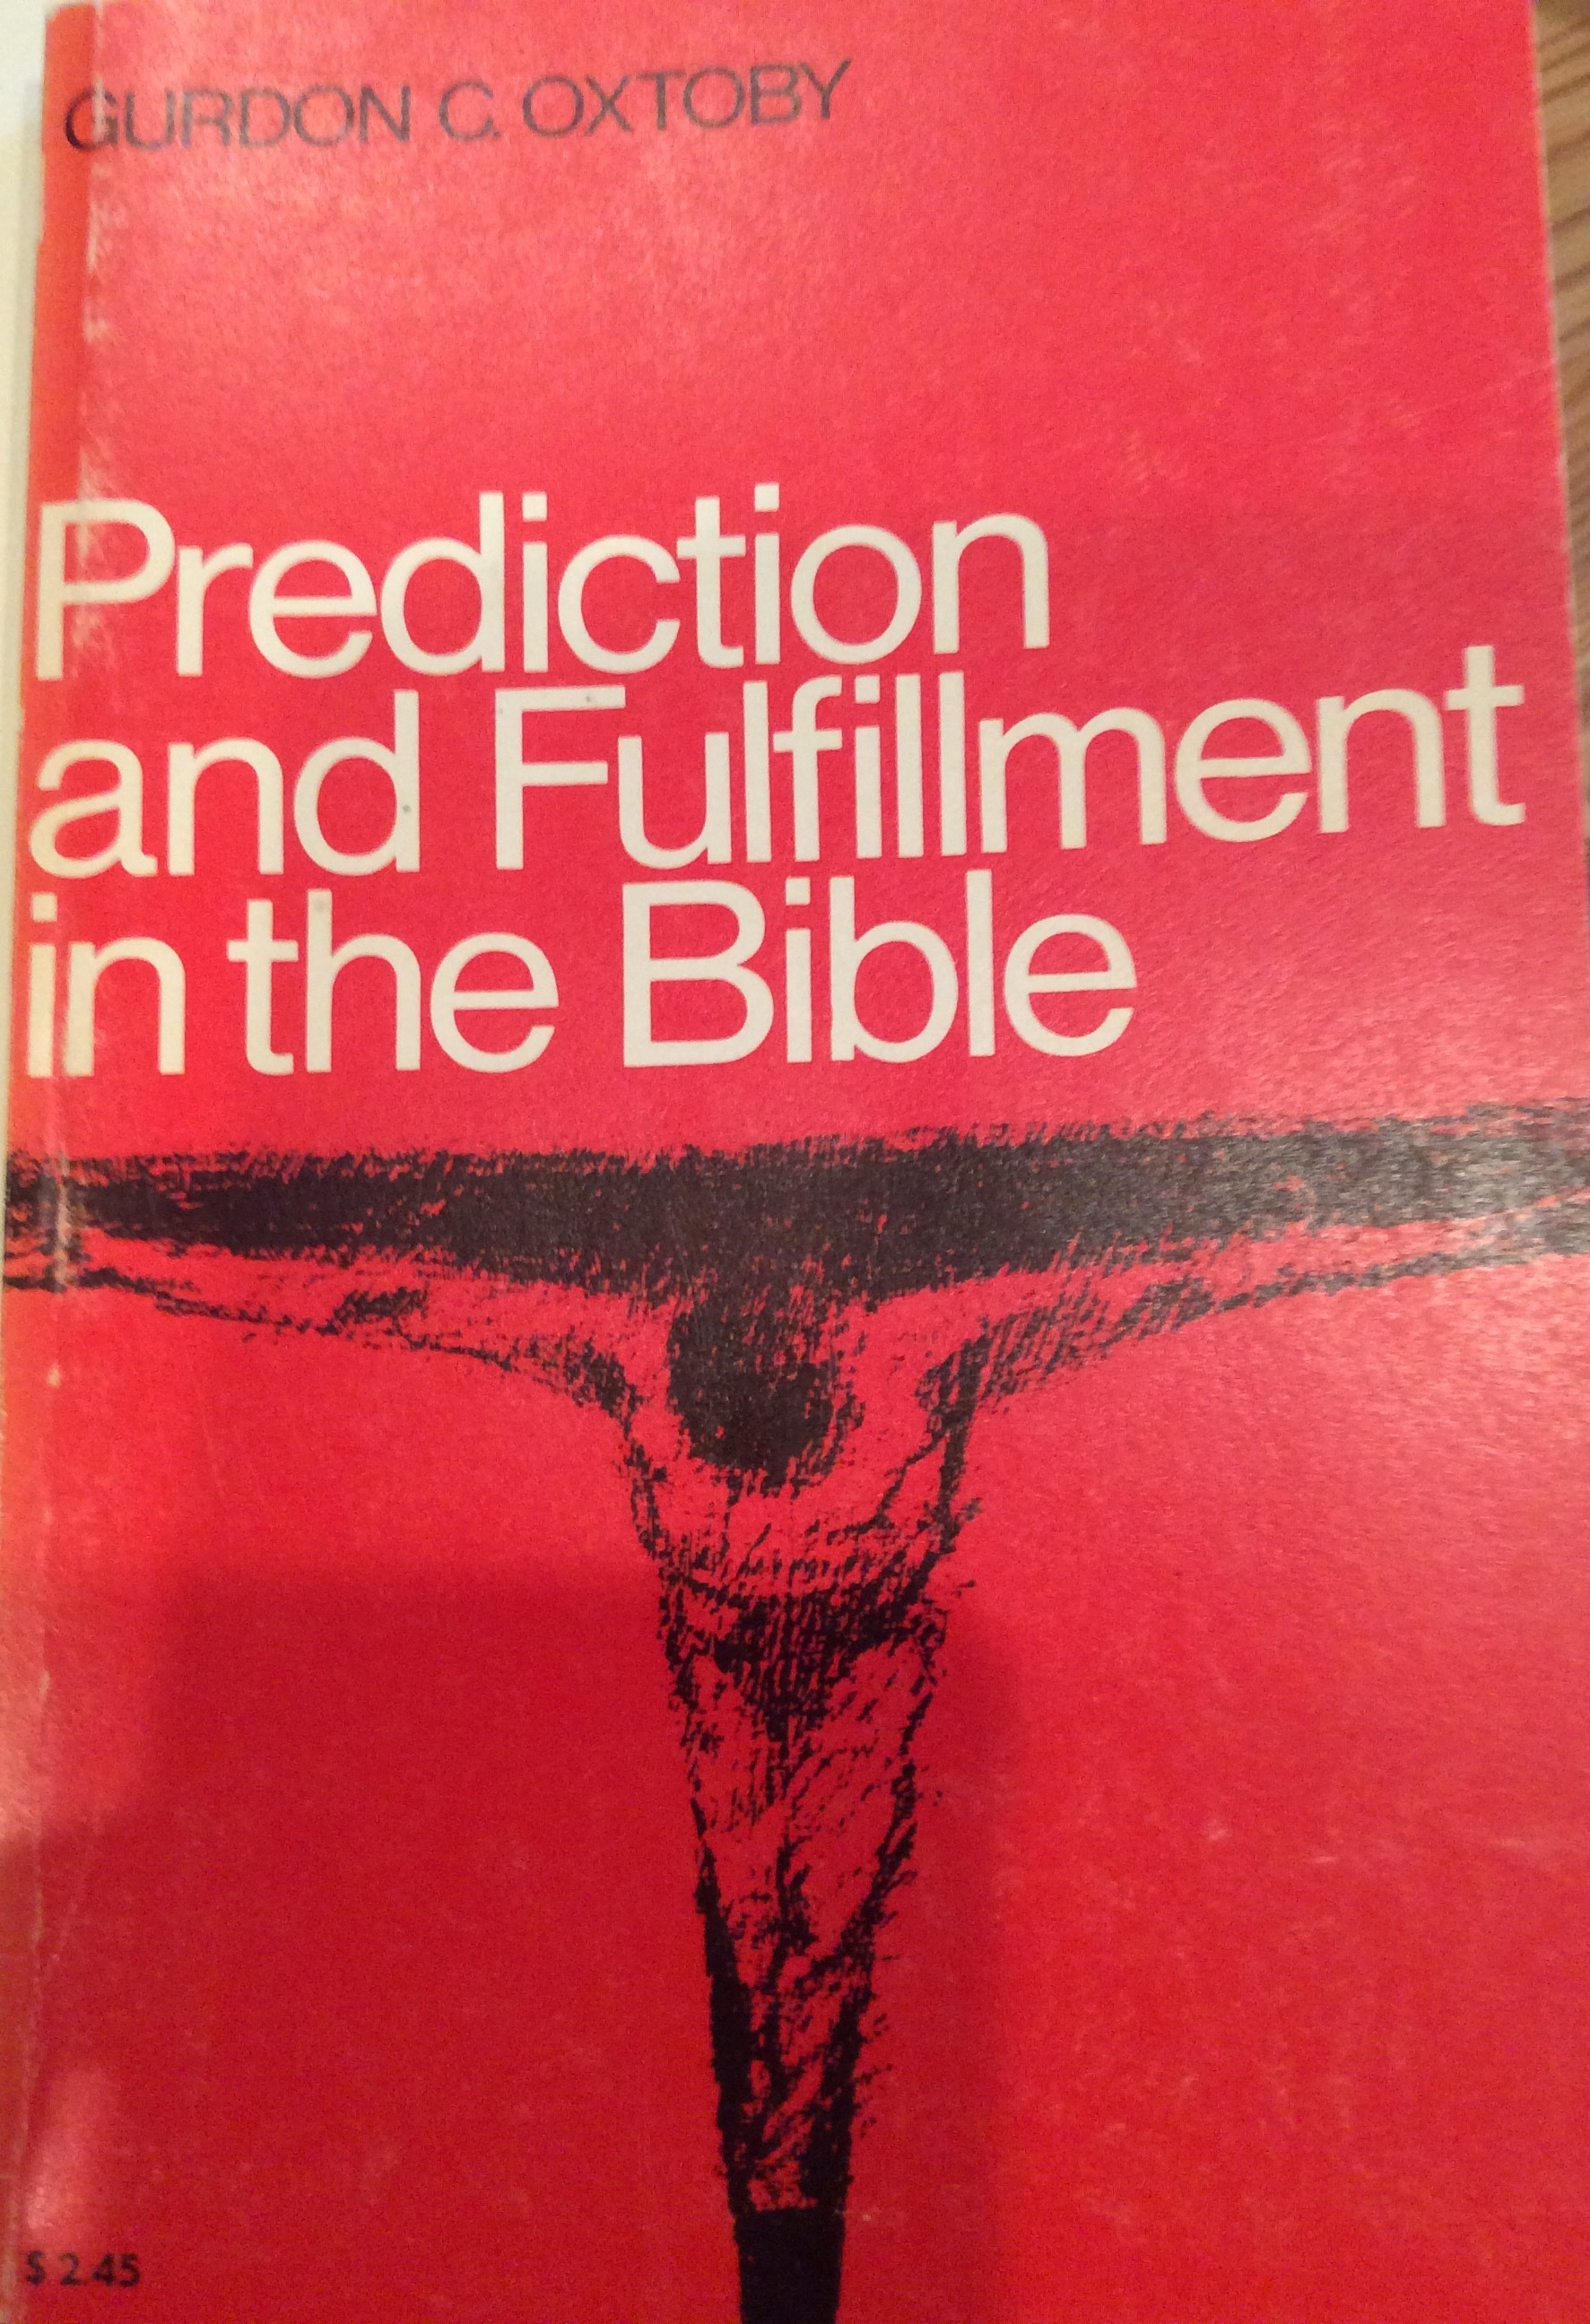 Prediction and Fulfillment in the Bible  by  Gurdon C. Oxtoby